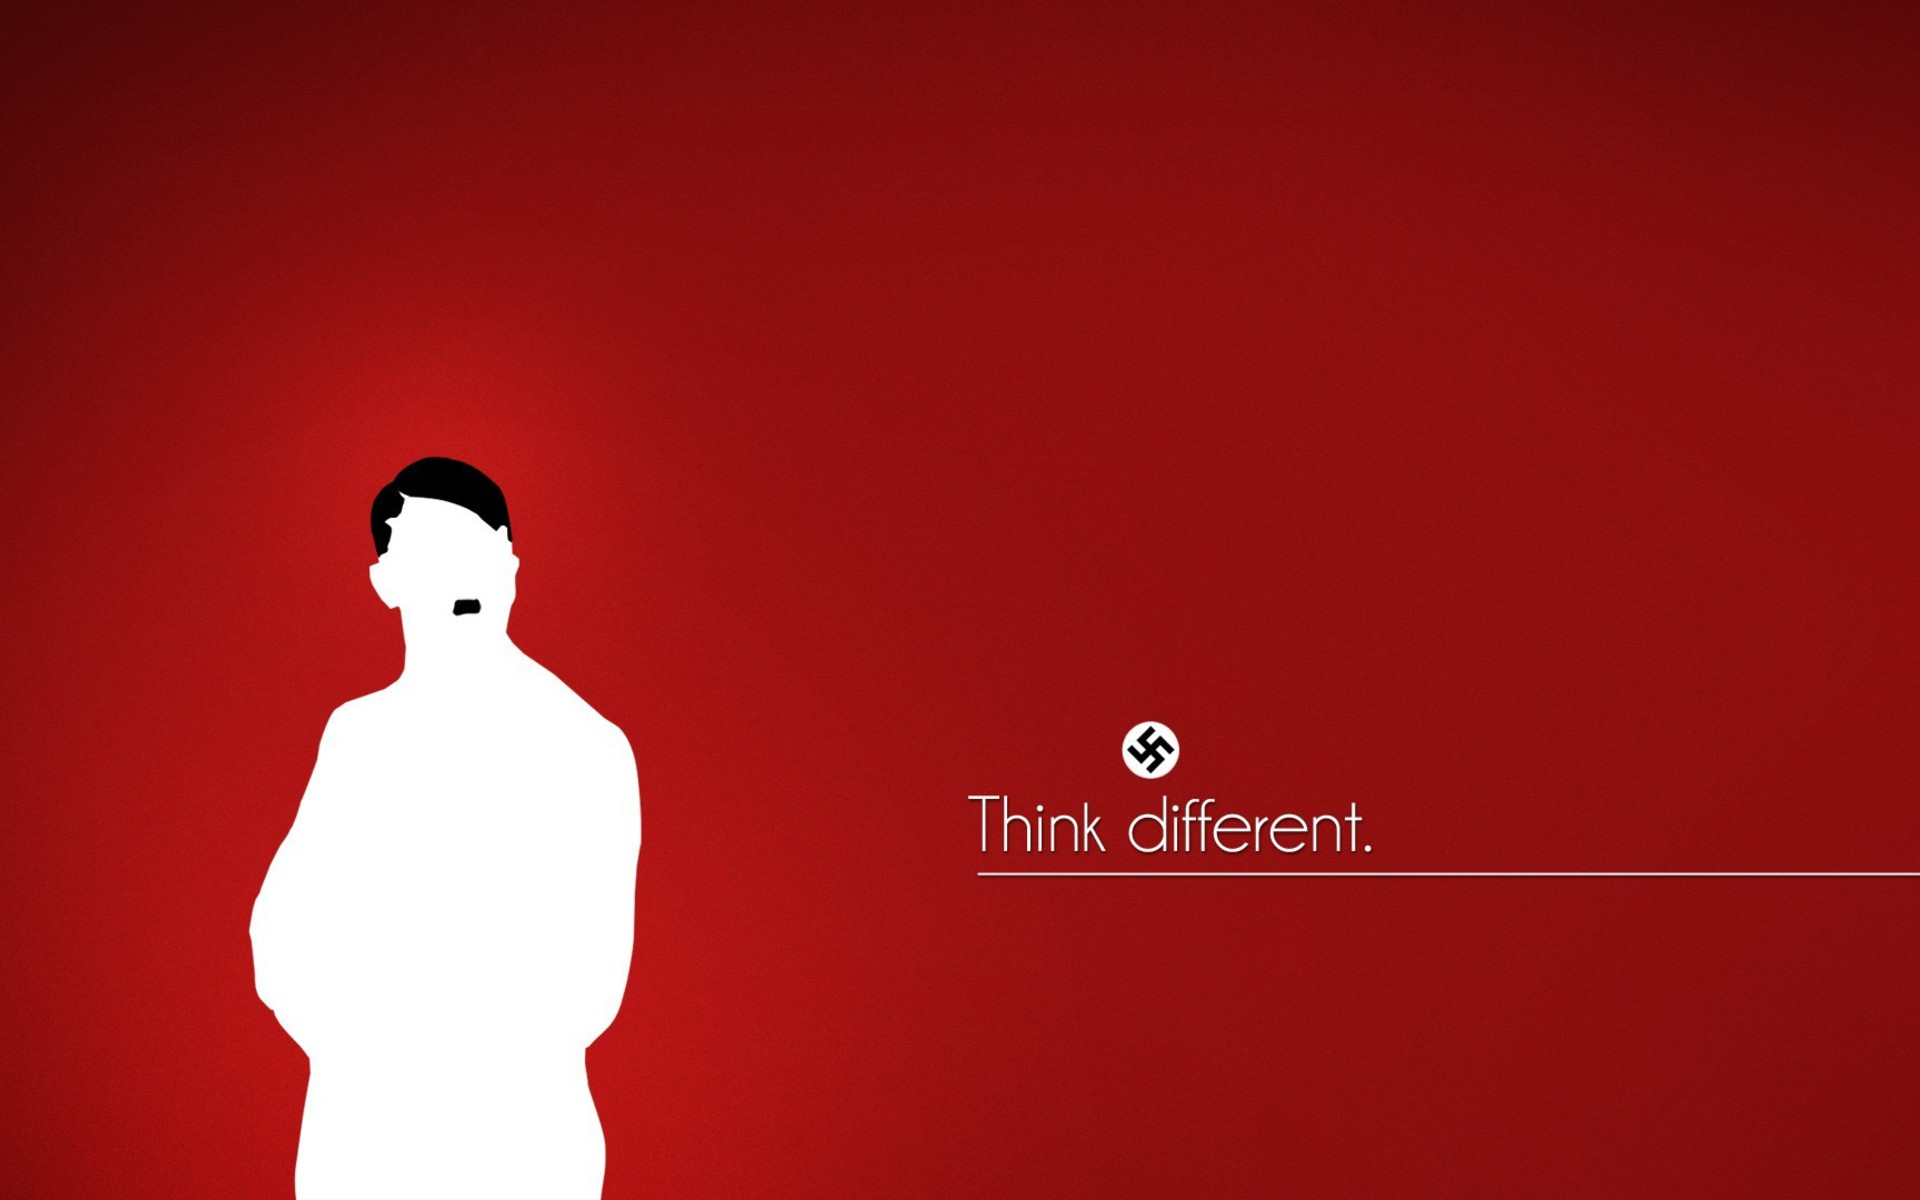 Minimalistic text nazi adolf hitler red background wallpaper wallpaper resolutions biocorpaavc Images